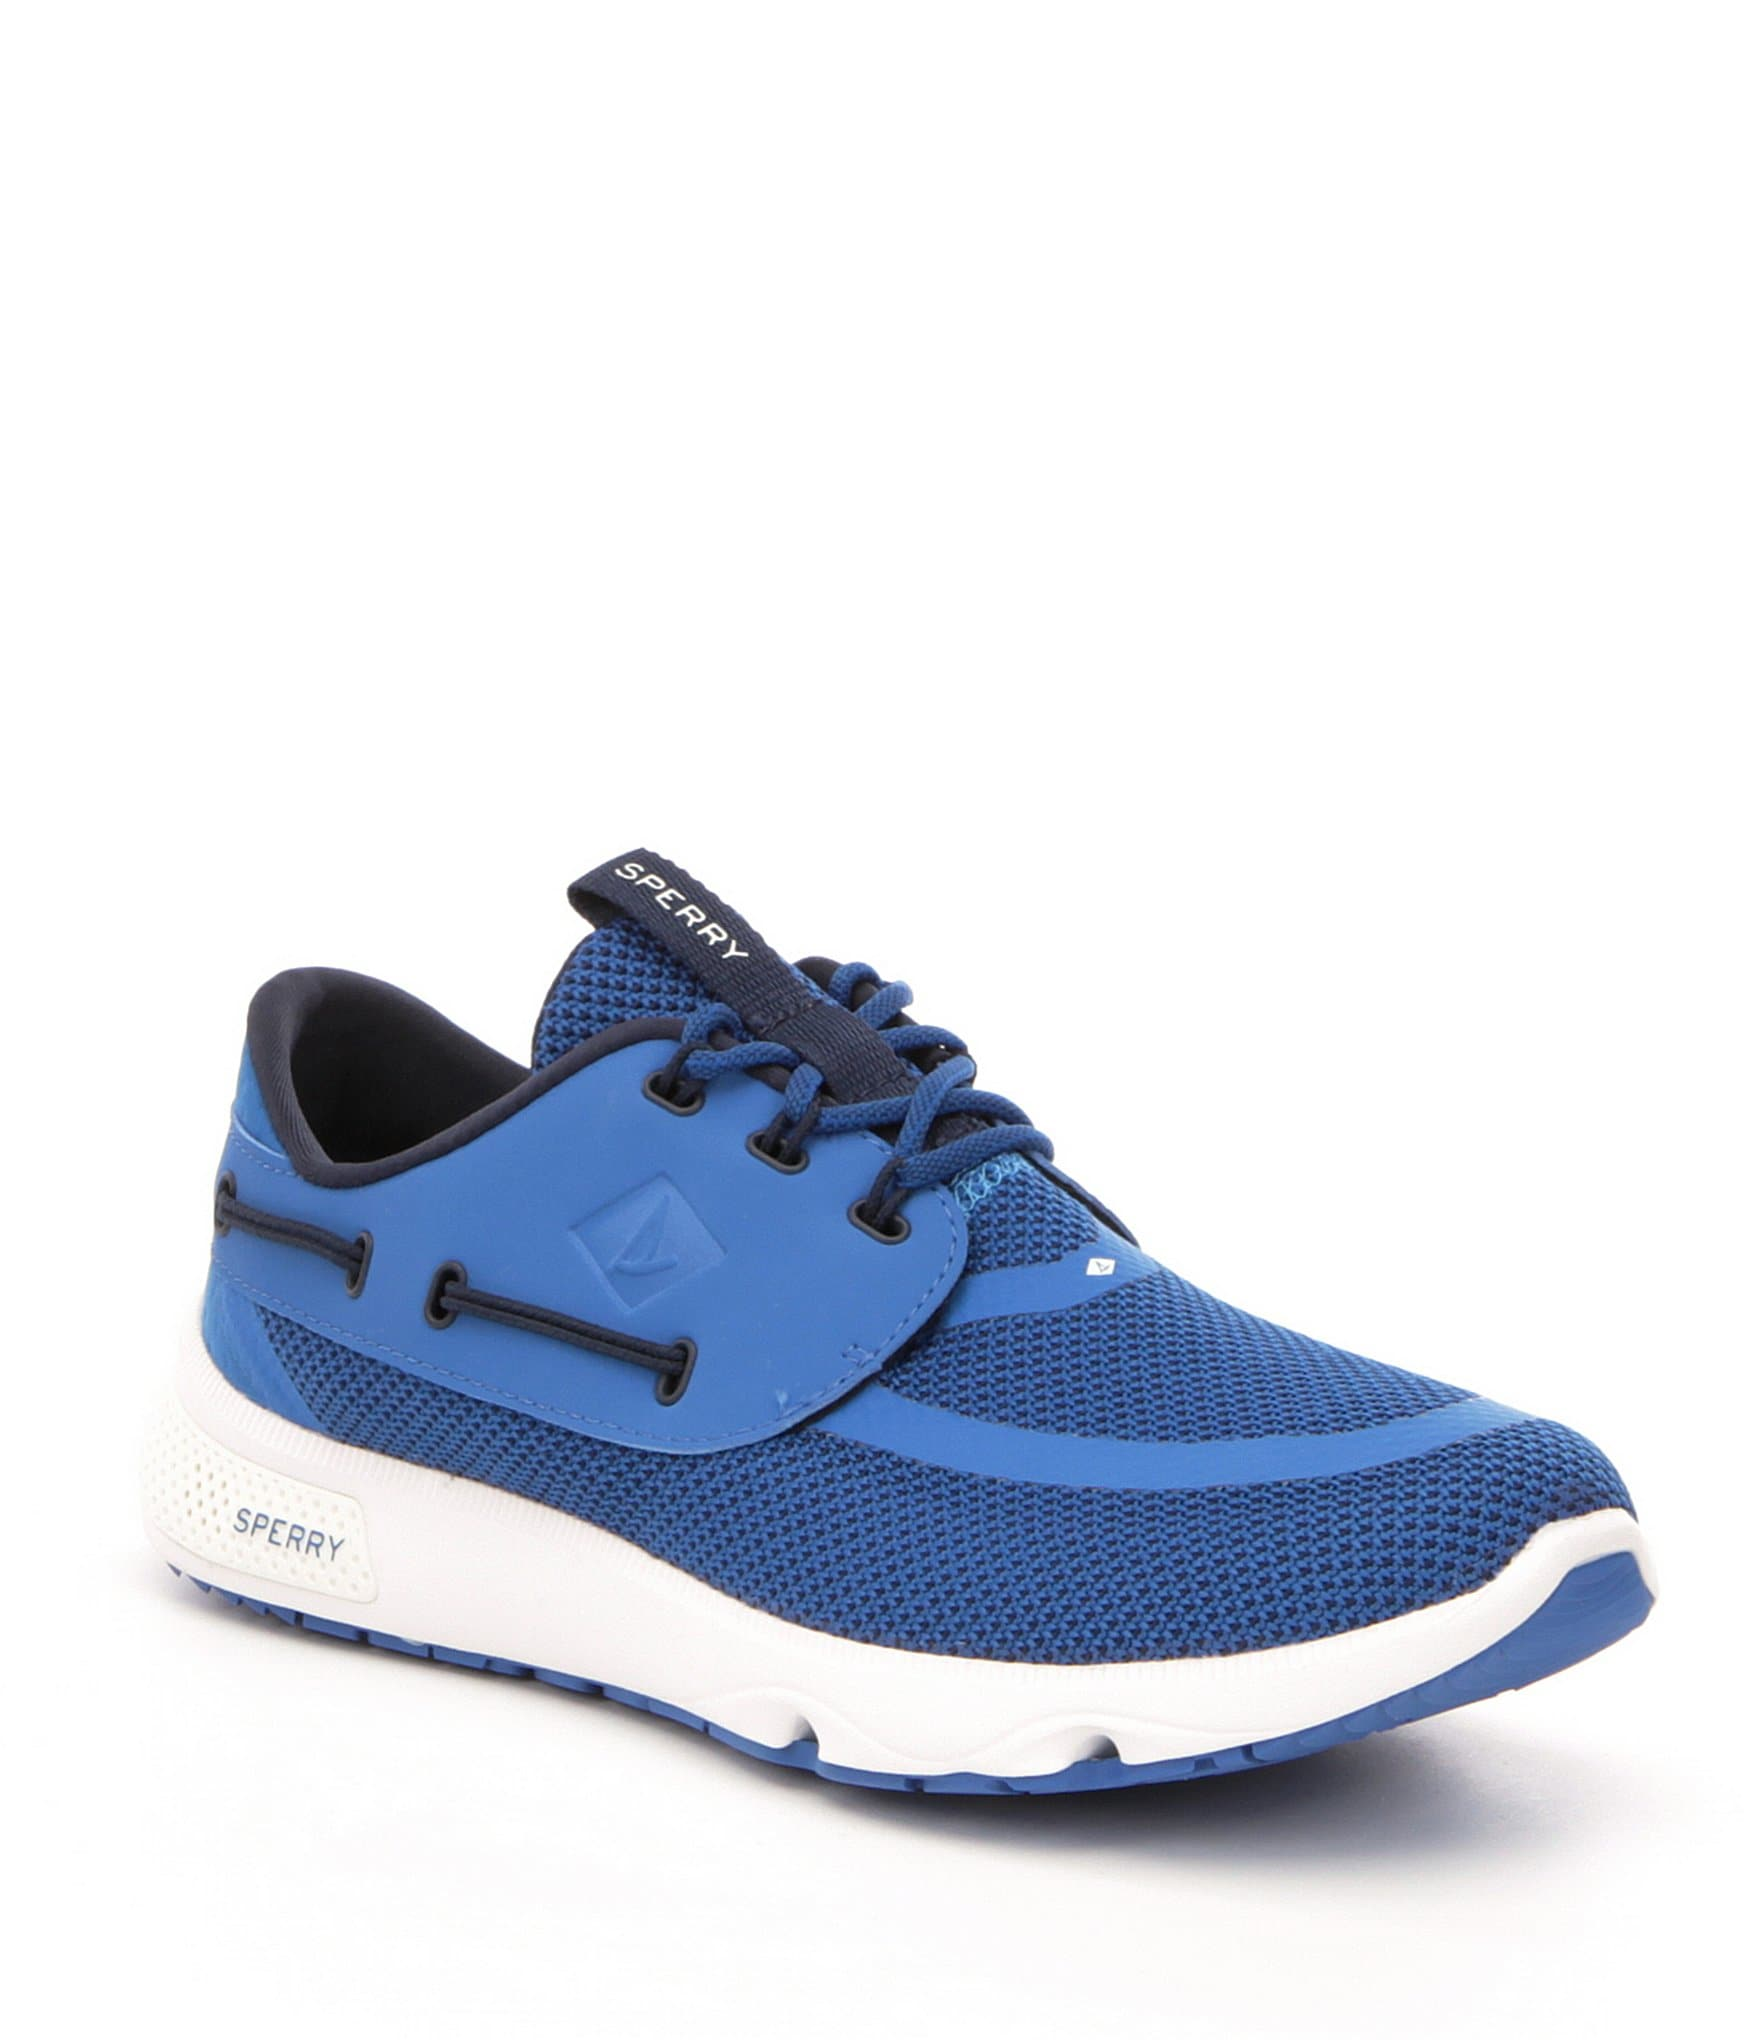 Mens Sperry Shoe Clearance